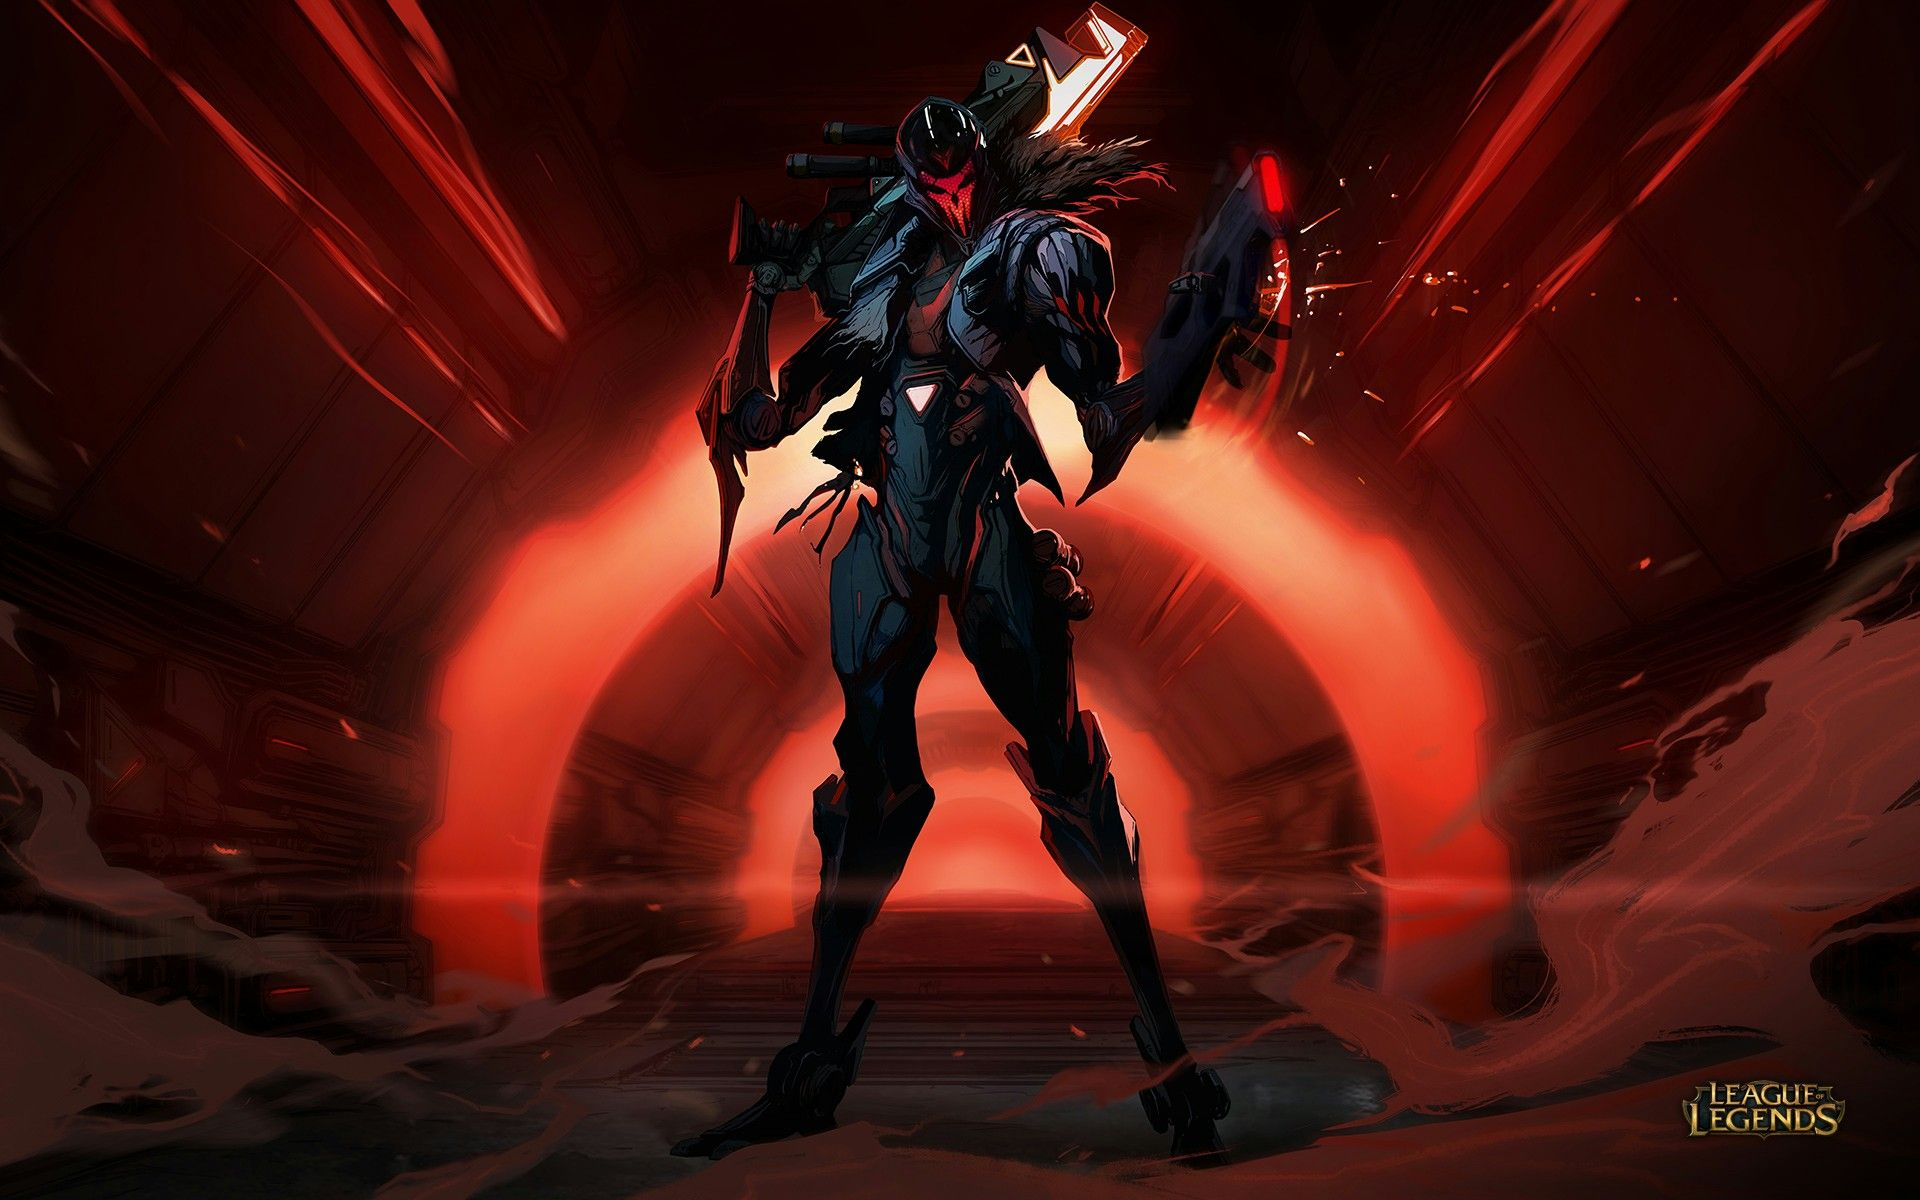 Pin By Meang Leang On Lol League Of Legends Jhin League Of